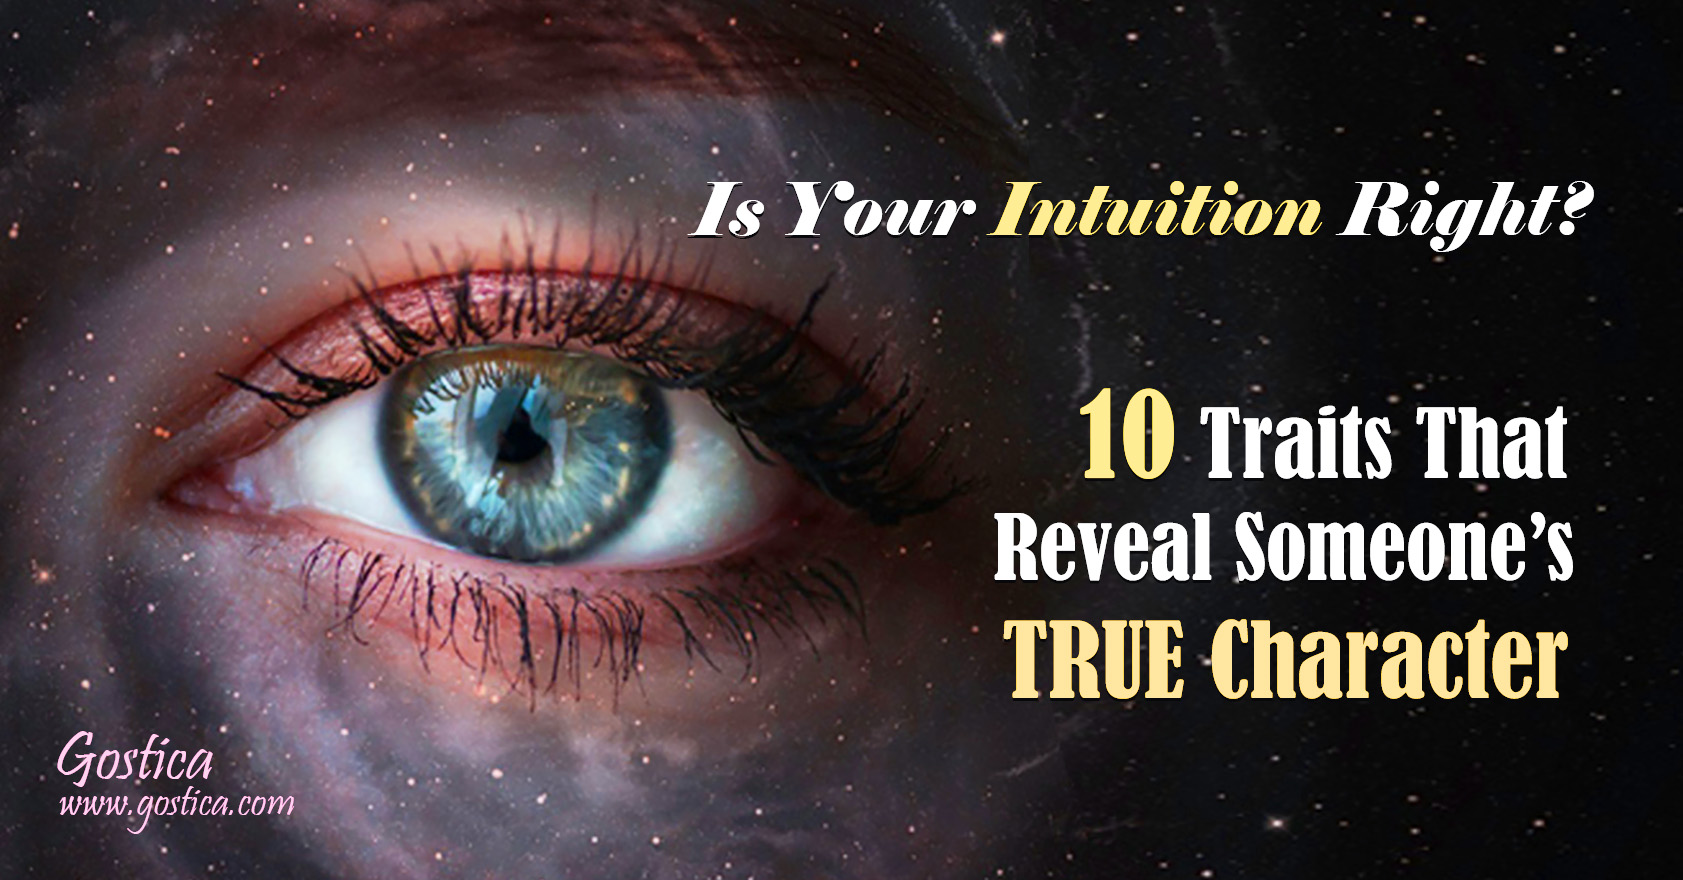 Is-Your-Intuition-Right-10-Traits-That-Reveal-Someone's-TRUE-Character-1.jpg